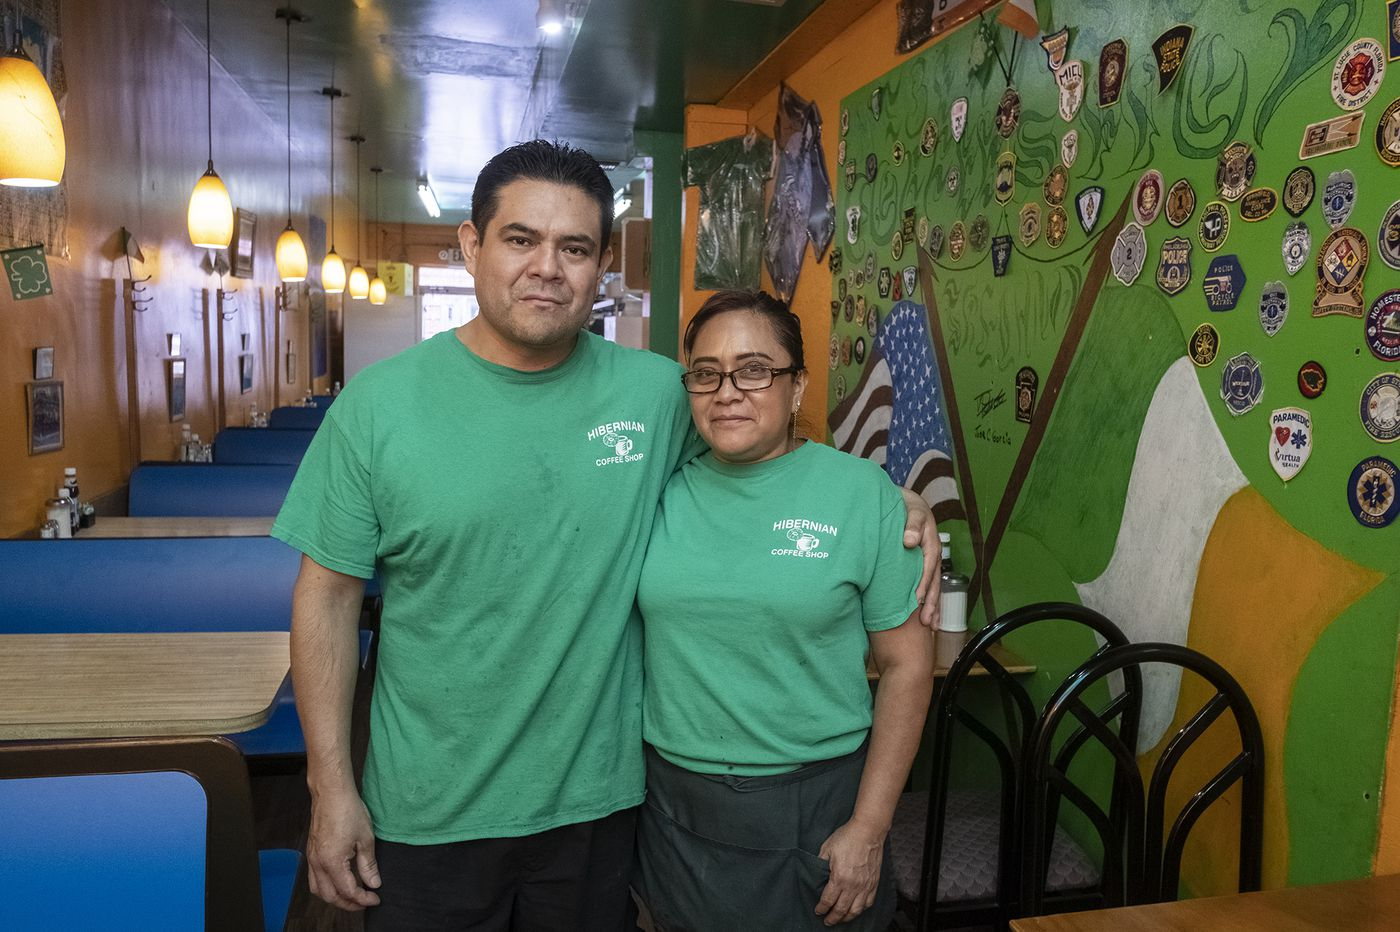 At the Hibernian in Upper Darby, It's Irish Food With a Mexican Flair